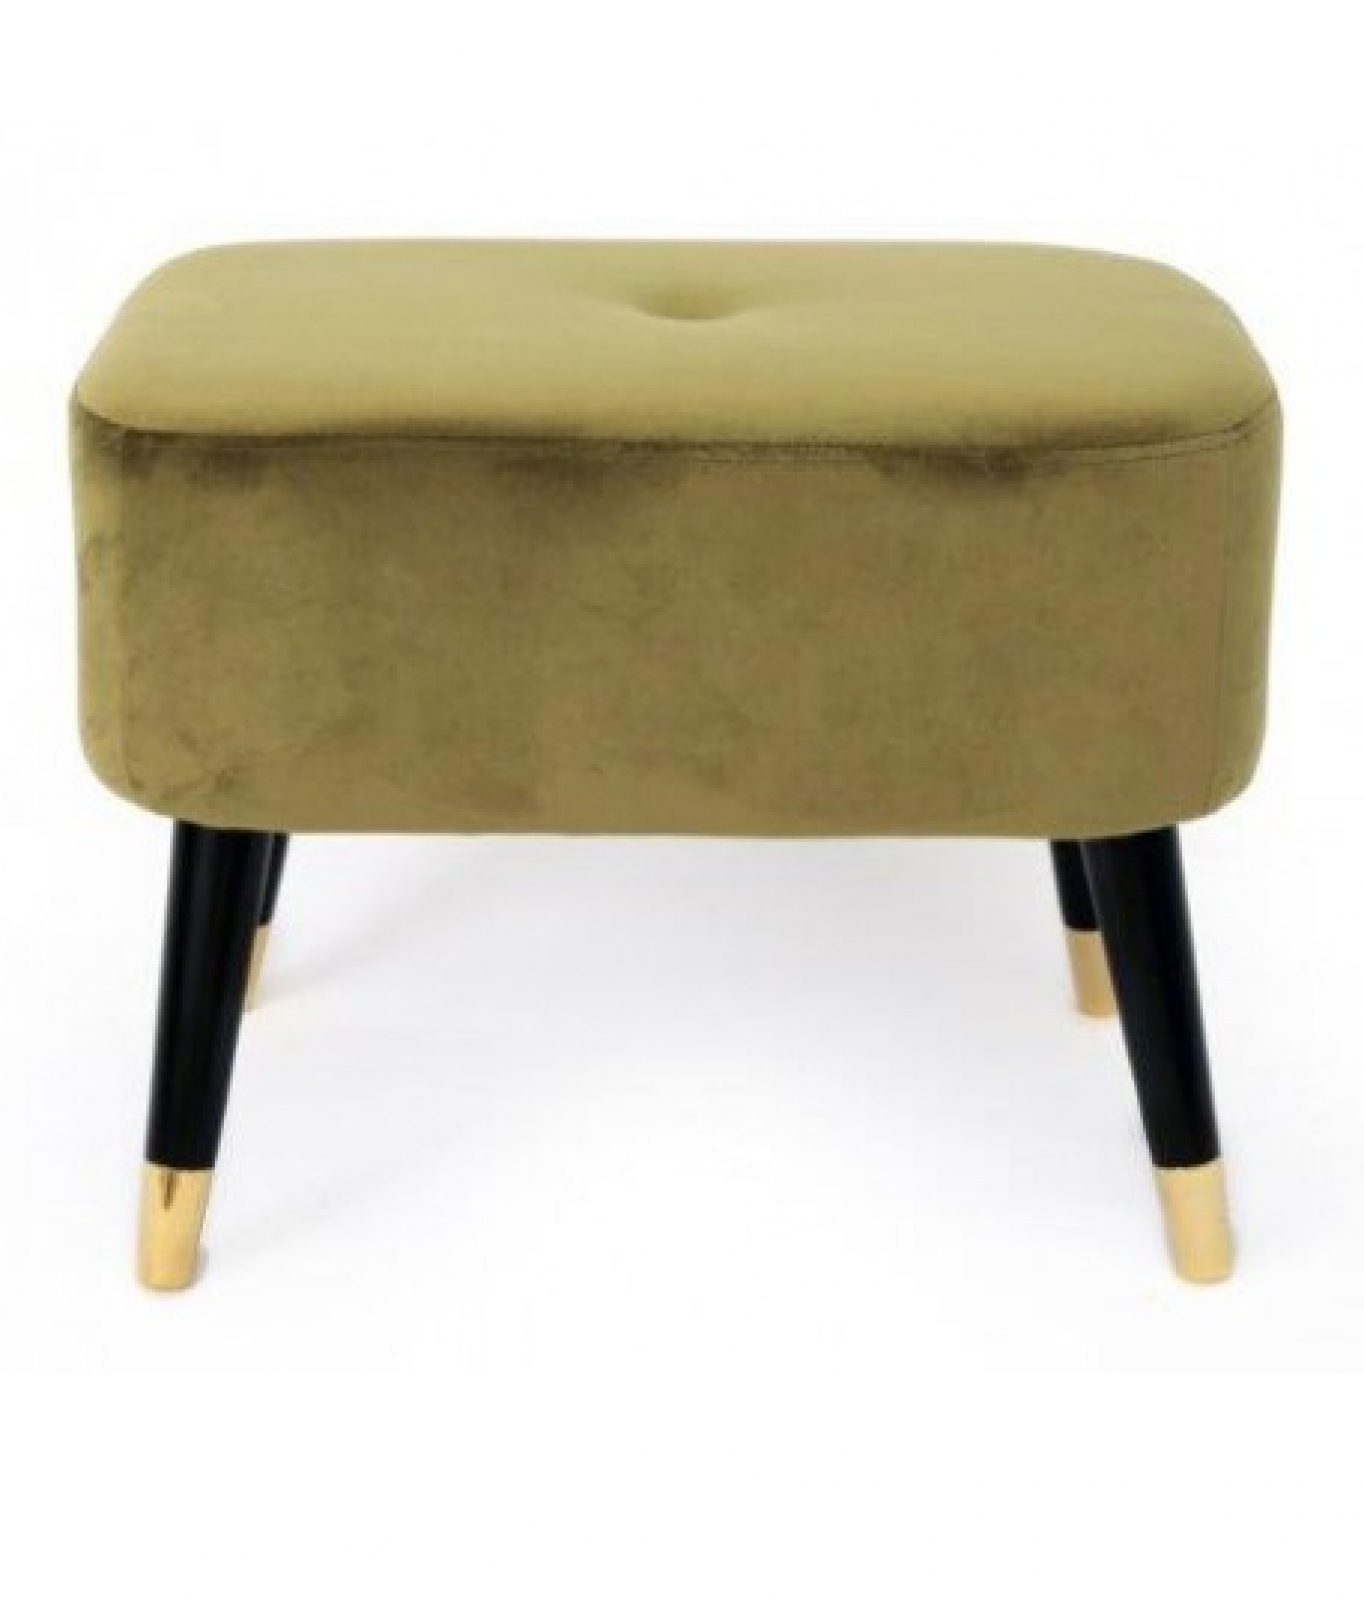 Green Velvet Rectangular Stool With Black Wooden Legs